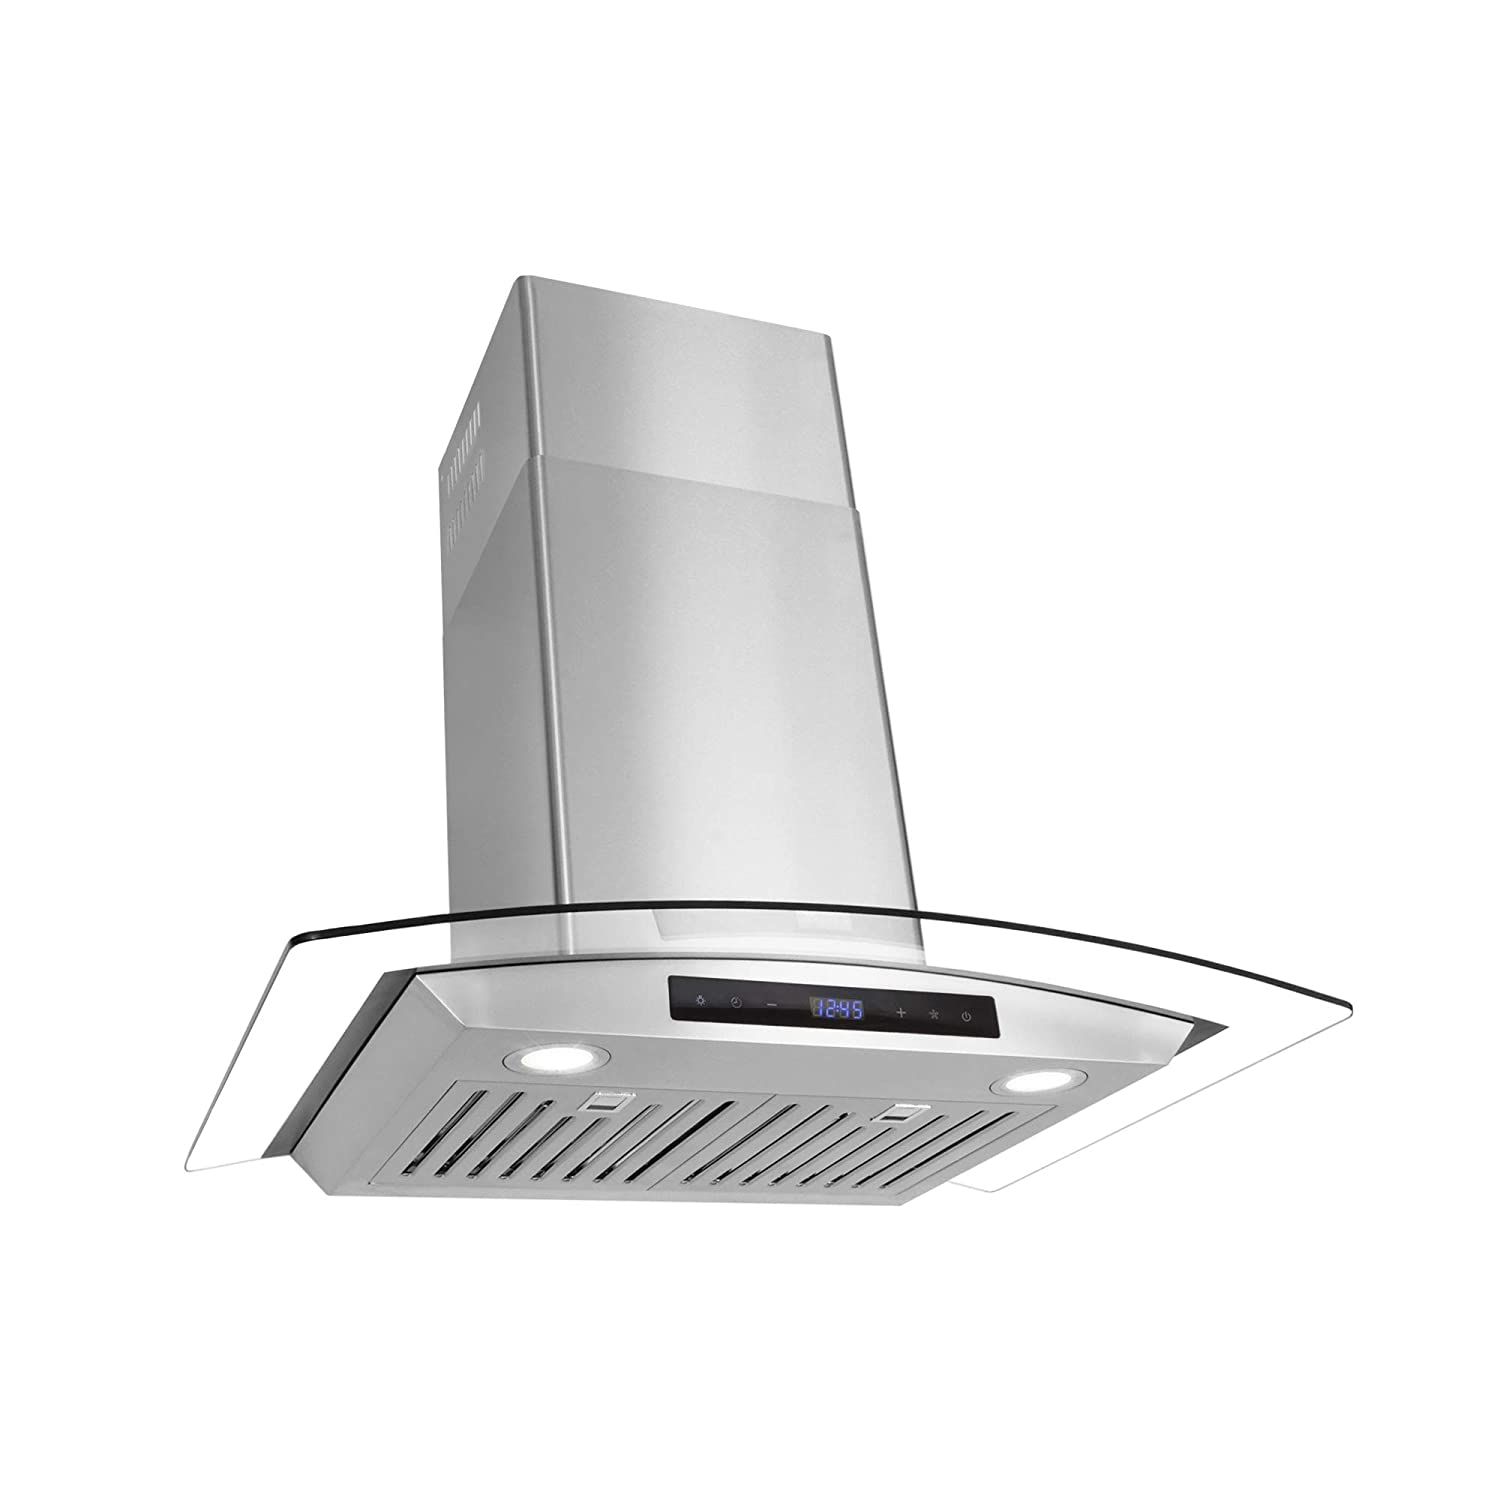 Cosmo 668AS750 30-in Wall-Mount Range Hood 380-CFM | Ducted / Ductless Convertible Duct , Glass Chimney Over Stove Vent with Light , 3 Speed Exhaust , Fan Timer , Permanent Filter ( Stainless Steel )